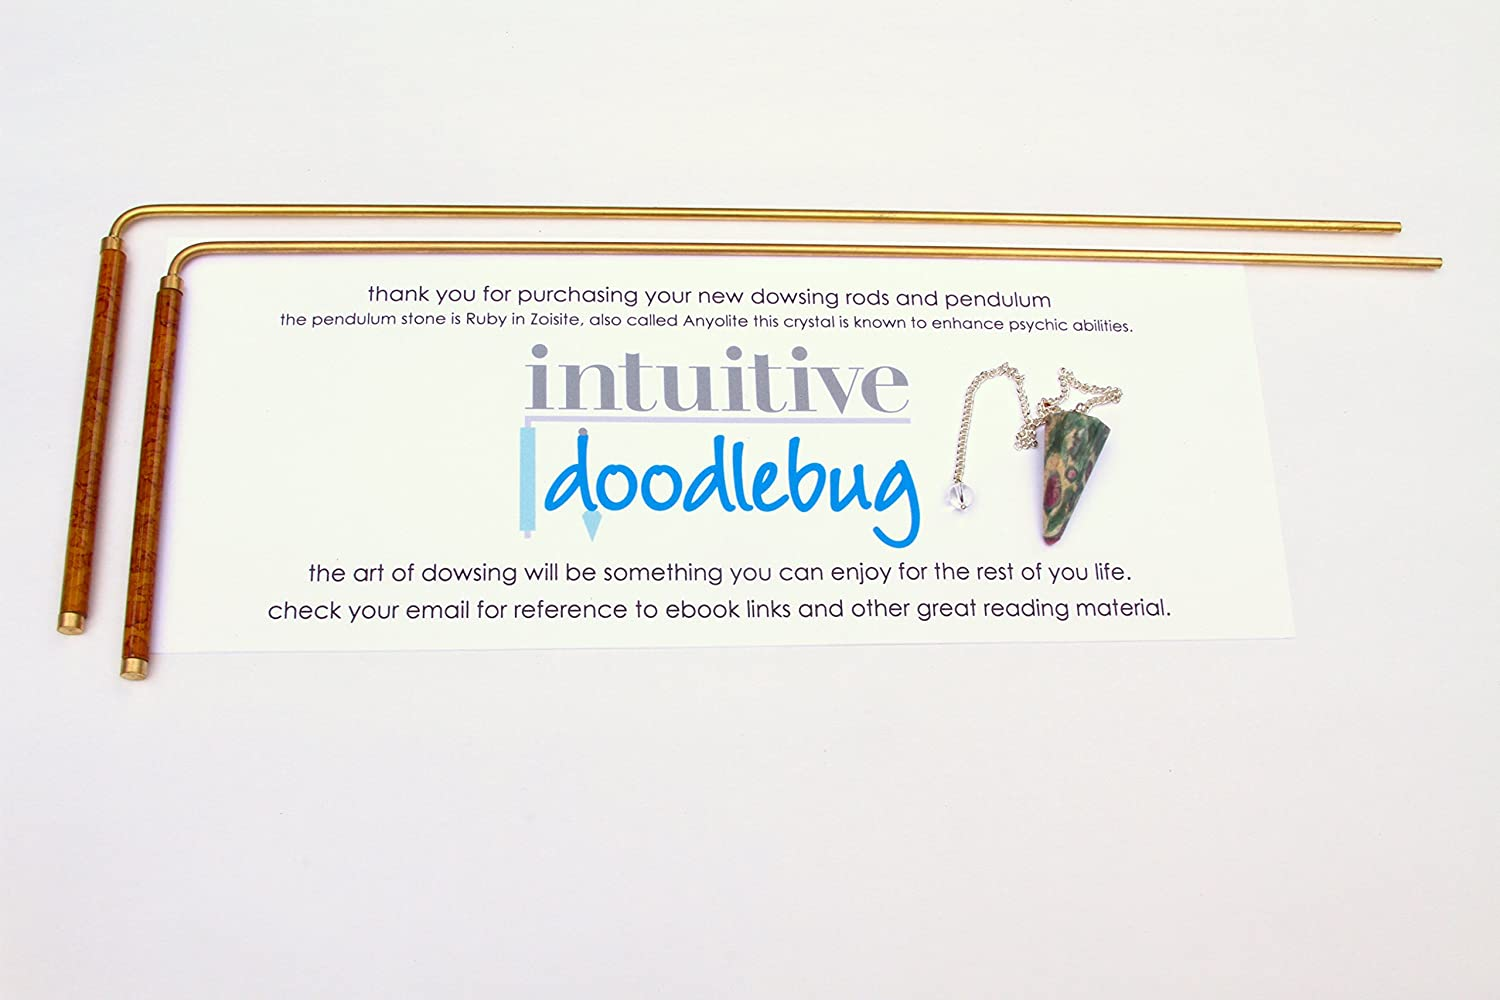 Intuitive Doodlebug Dowsing Rod Set includes 2 Divining Rods with Enamel  Coated Copper Handles, Ruby Zoisite Pendulum known to Enhance Psychic